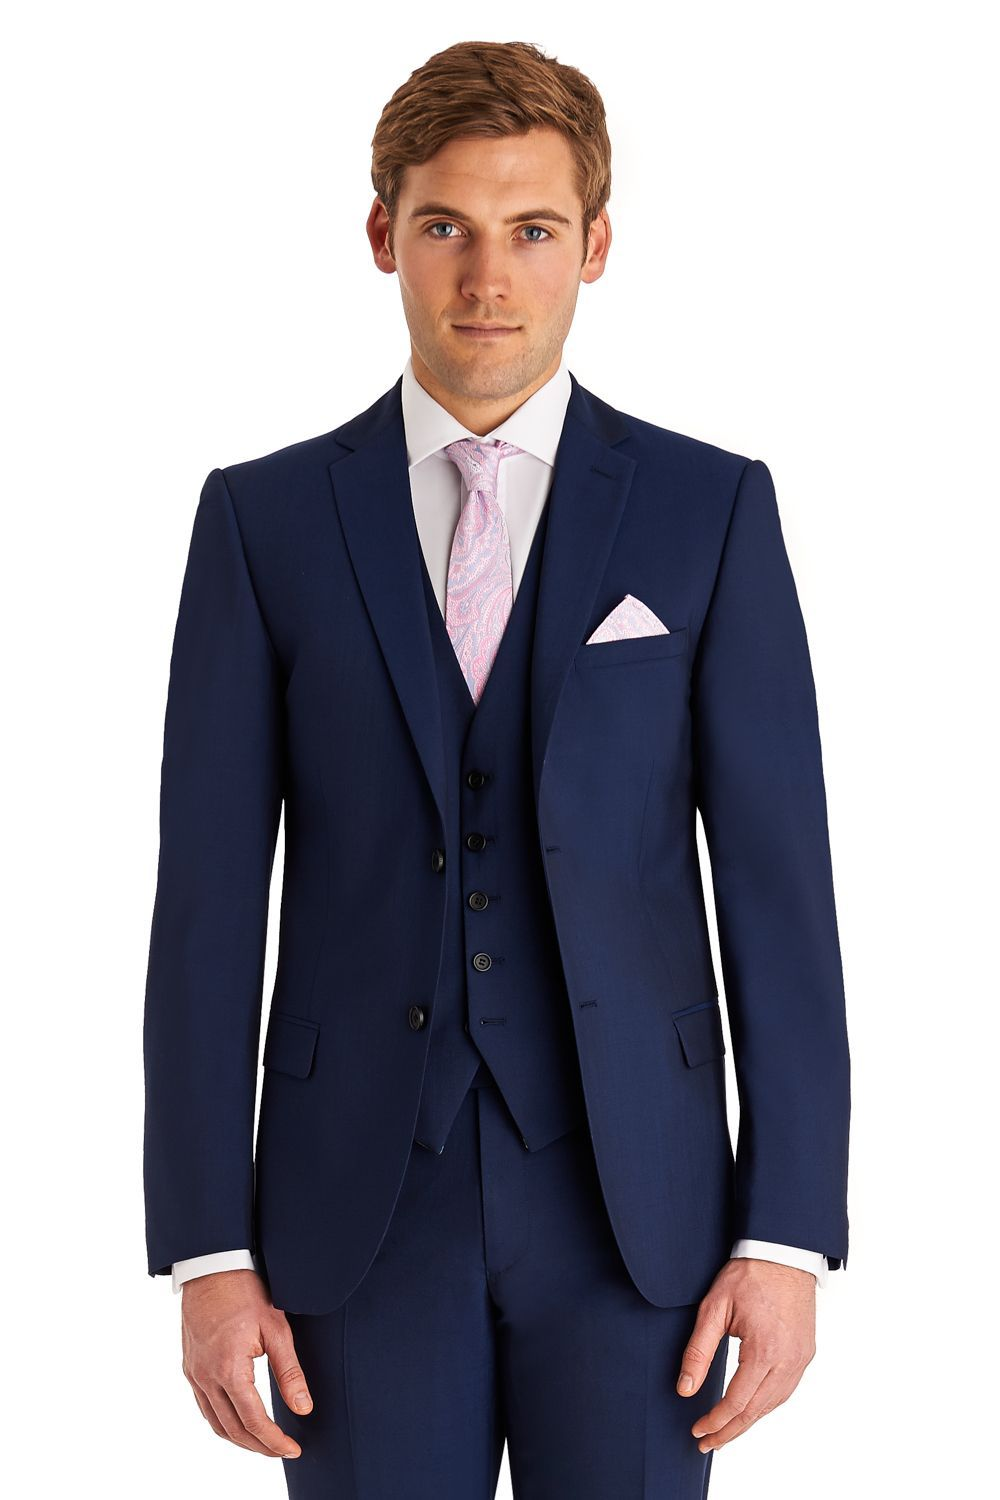 133deef59 Ted Baker Lounge Lizard for Royal Ascot